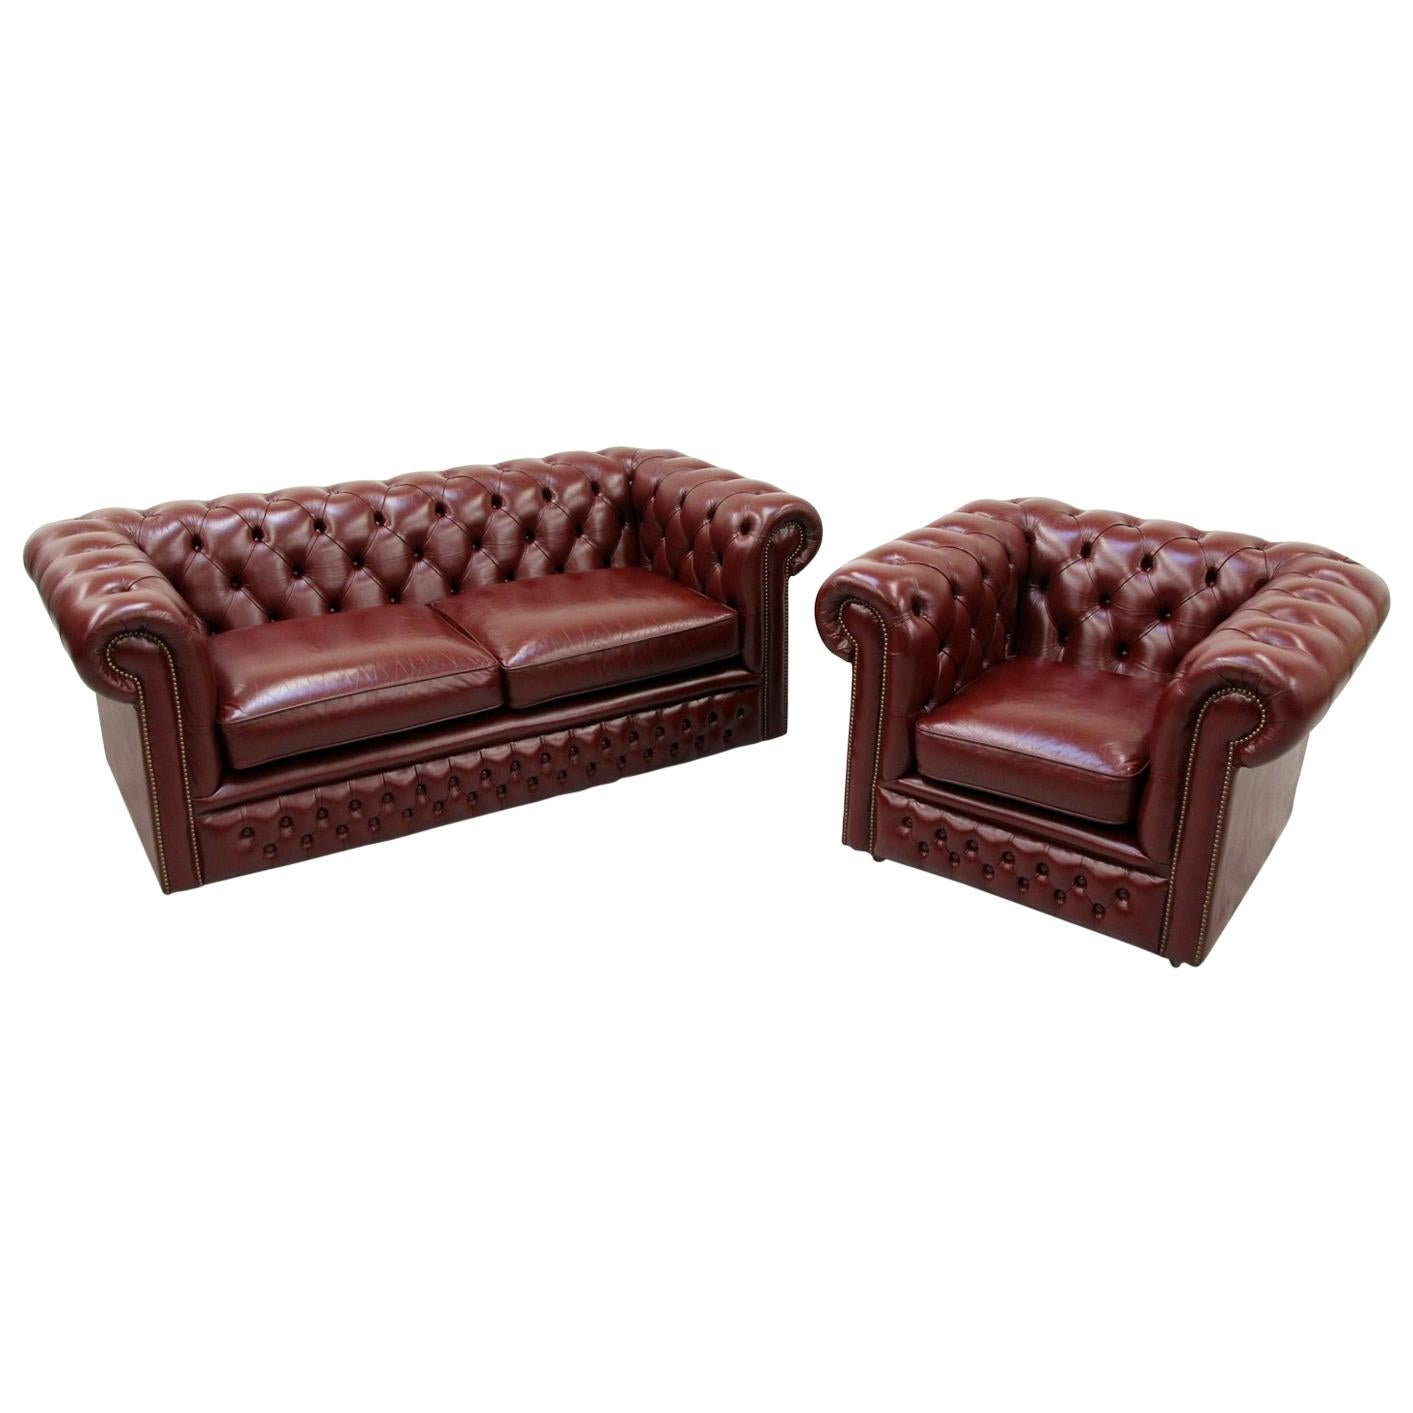 Chesterfield Sofa Online Uk Chesterfield Sofa Armchair Set Wing Chair Couch Antique Chair